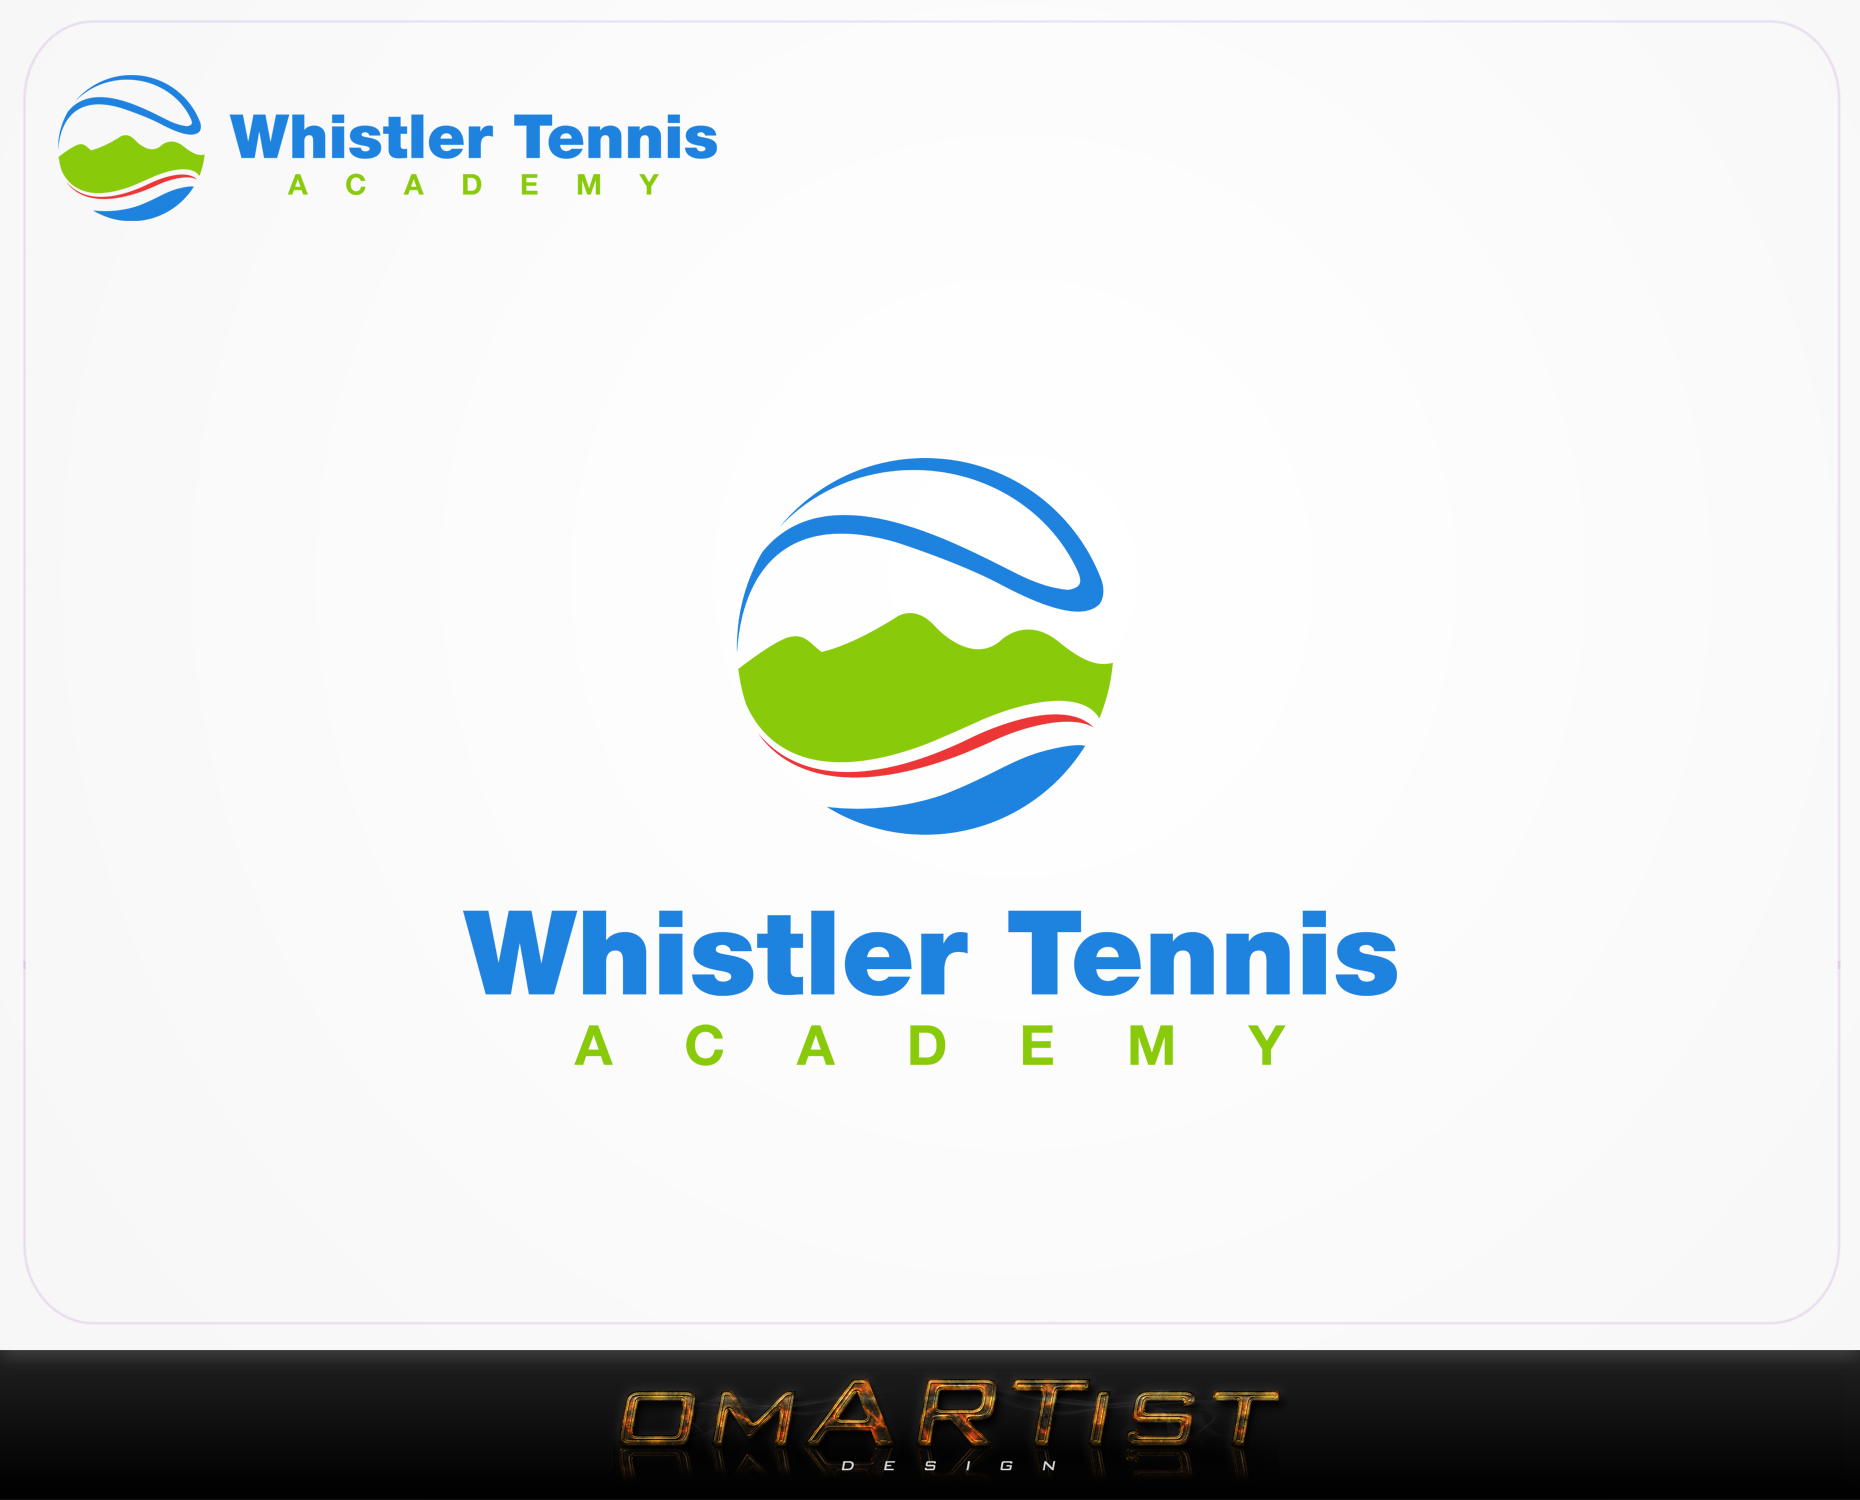 Logo Design by omARTist - Entry No. 165 in the Logo Design Contest Imaginative Logo Design for Whistler Tennis Academy.